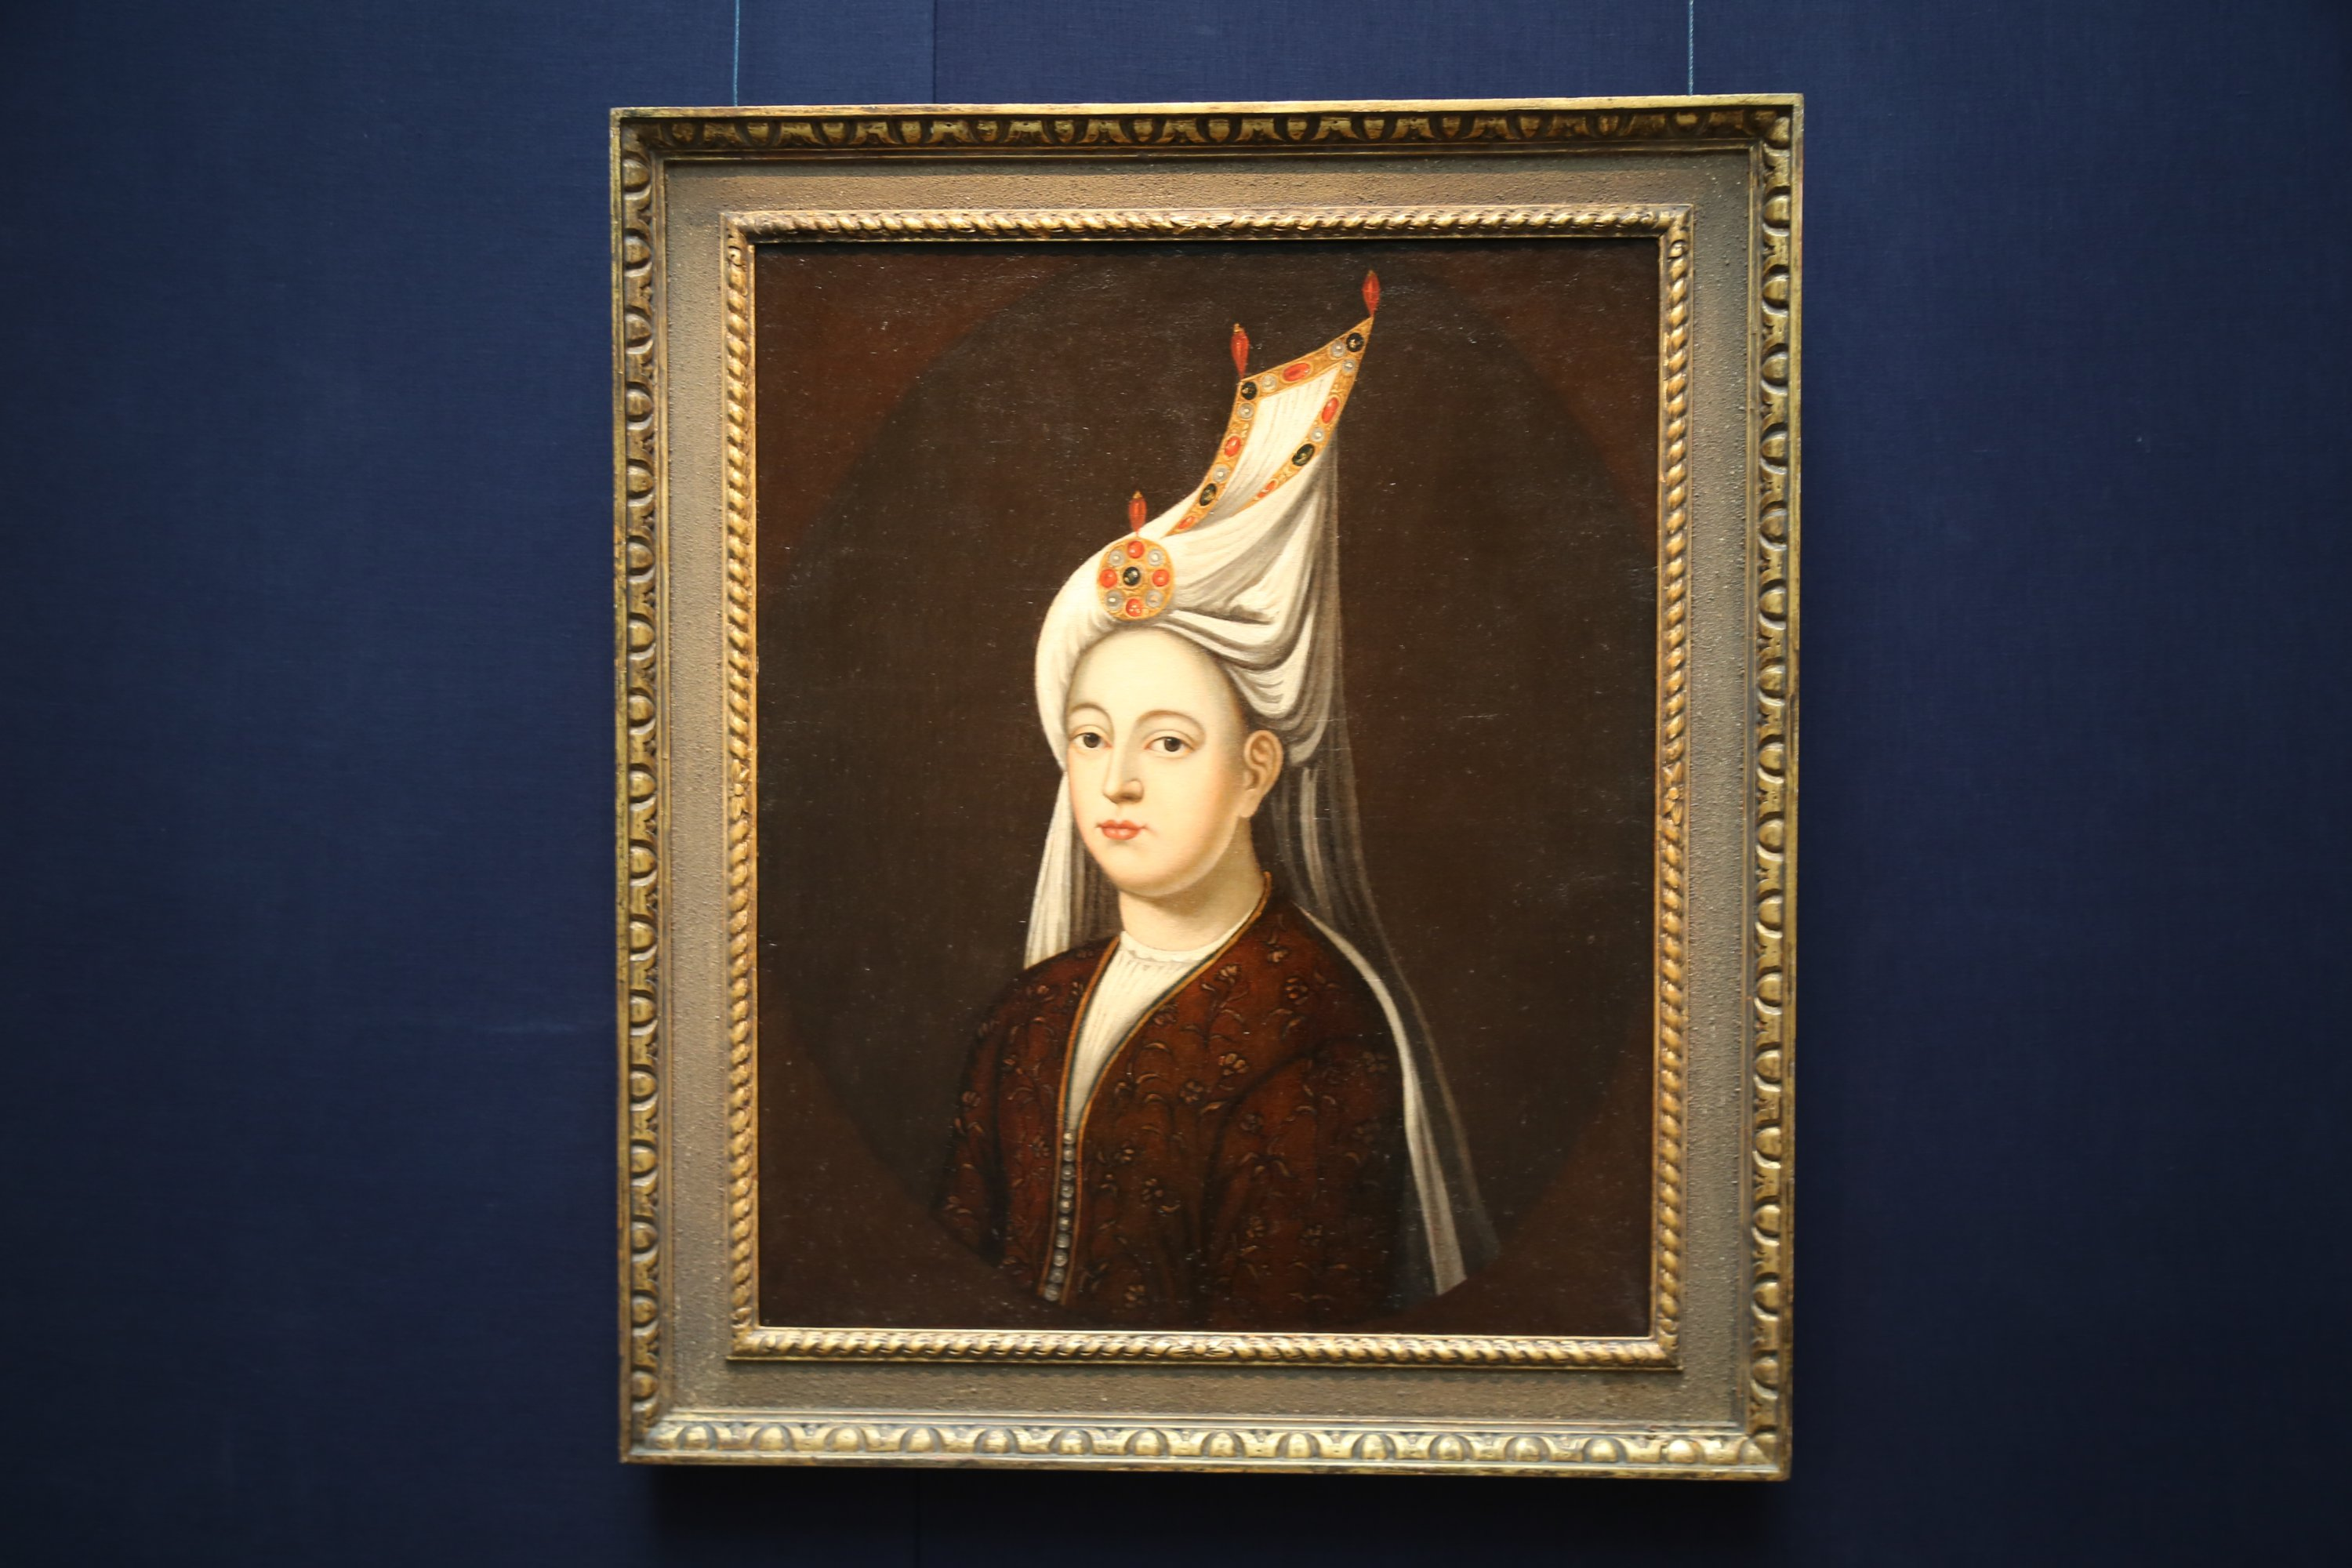 The portrait of Mihrimah Sultan on display at Sotheby's, London, U.K., March 31, 2021. (AA Photo)